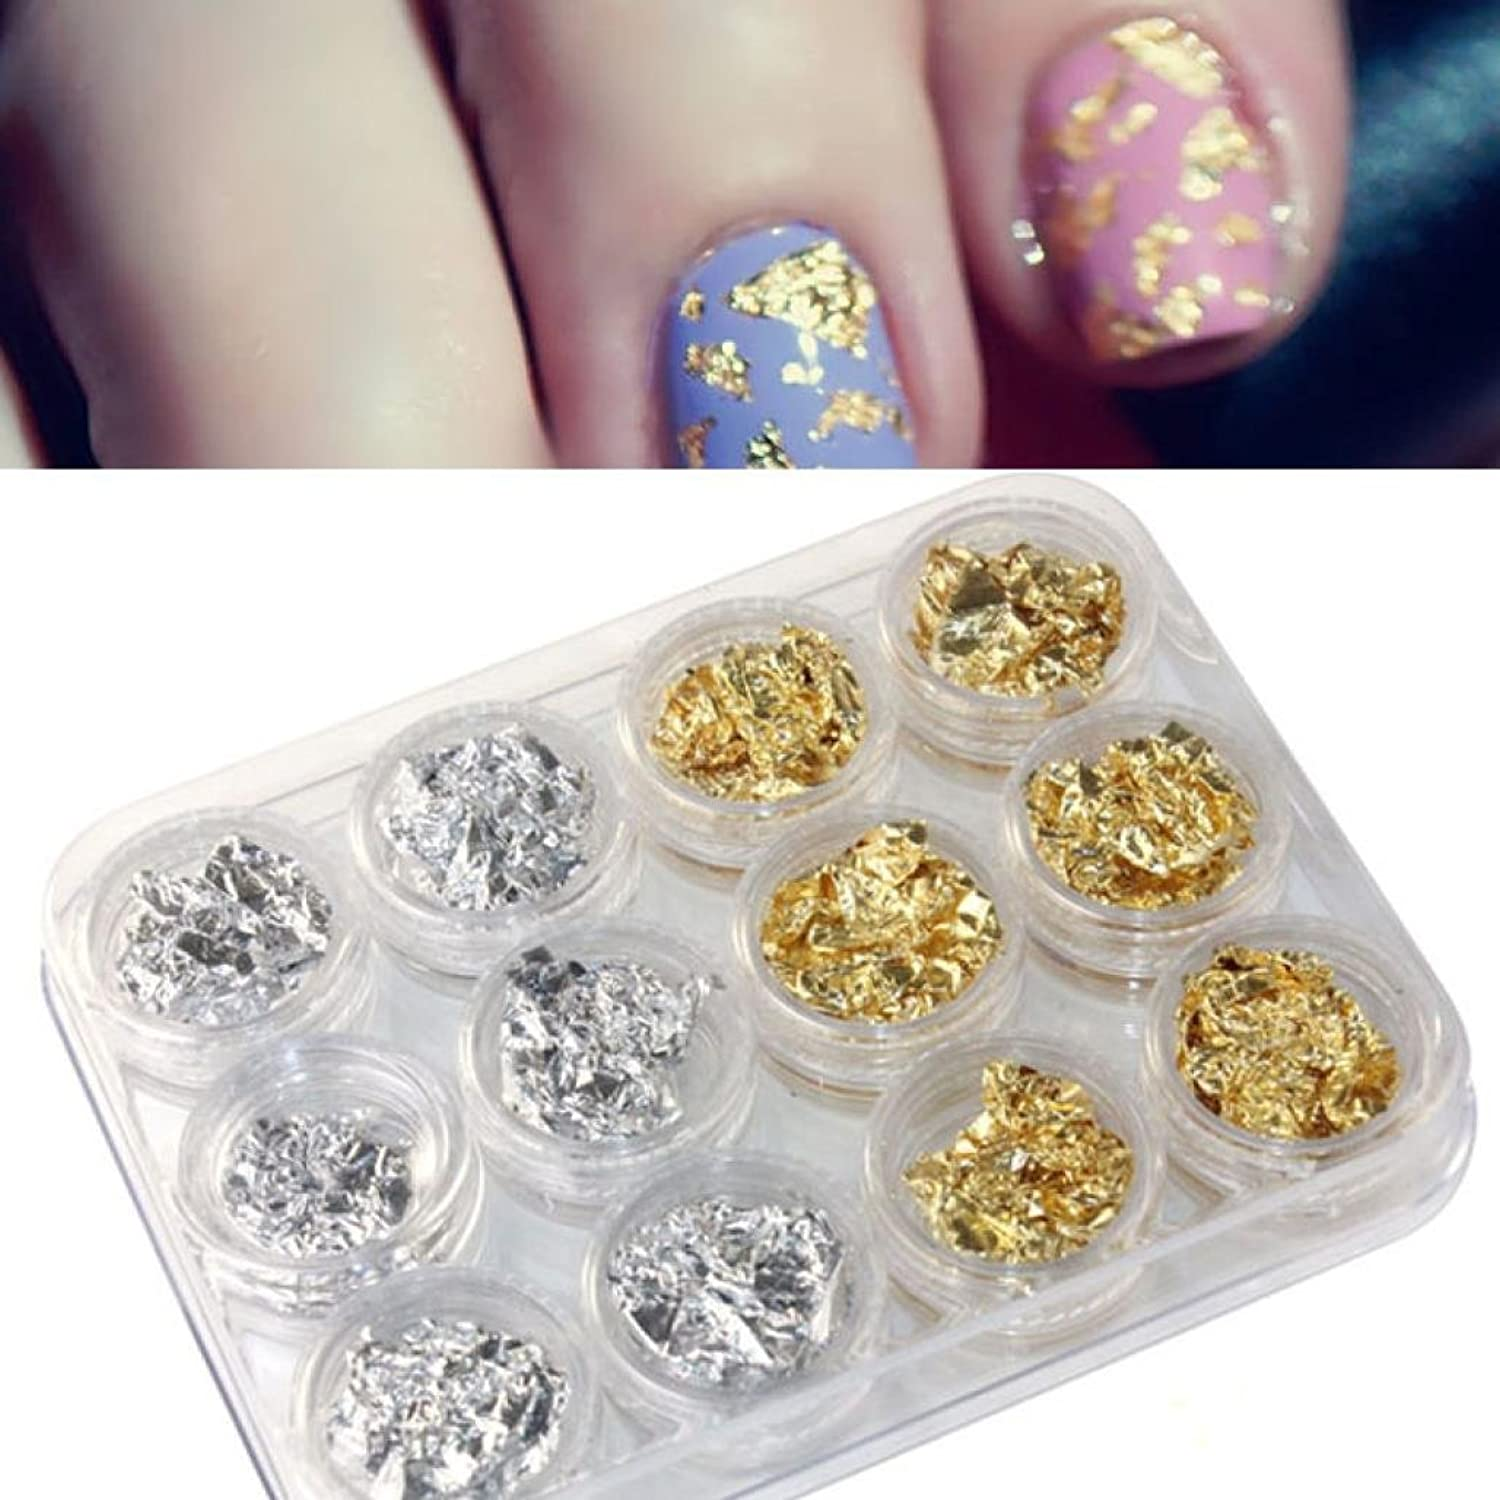 Amazon gotd nail art gold silver paillette flake chip foil amazon gotd nail art gold silver paillette flake chip foil diy acrylic uv gel pager 12 pcs clothing prinsesfo Images